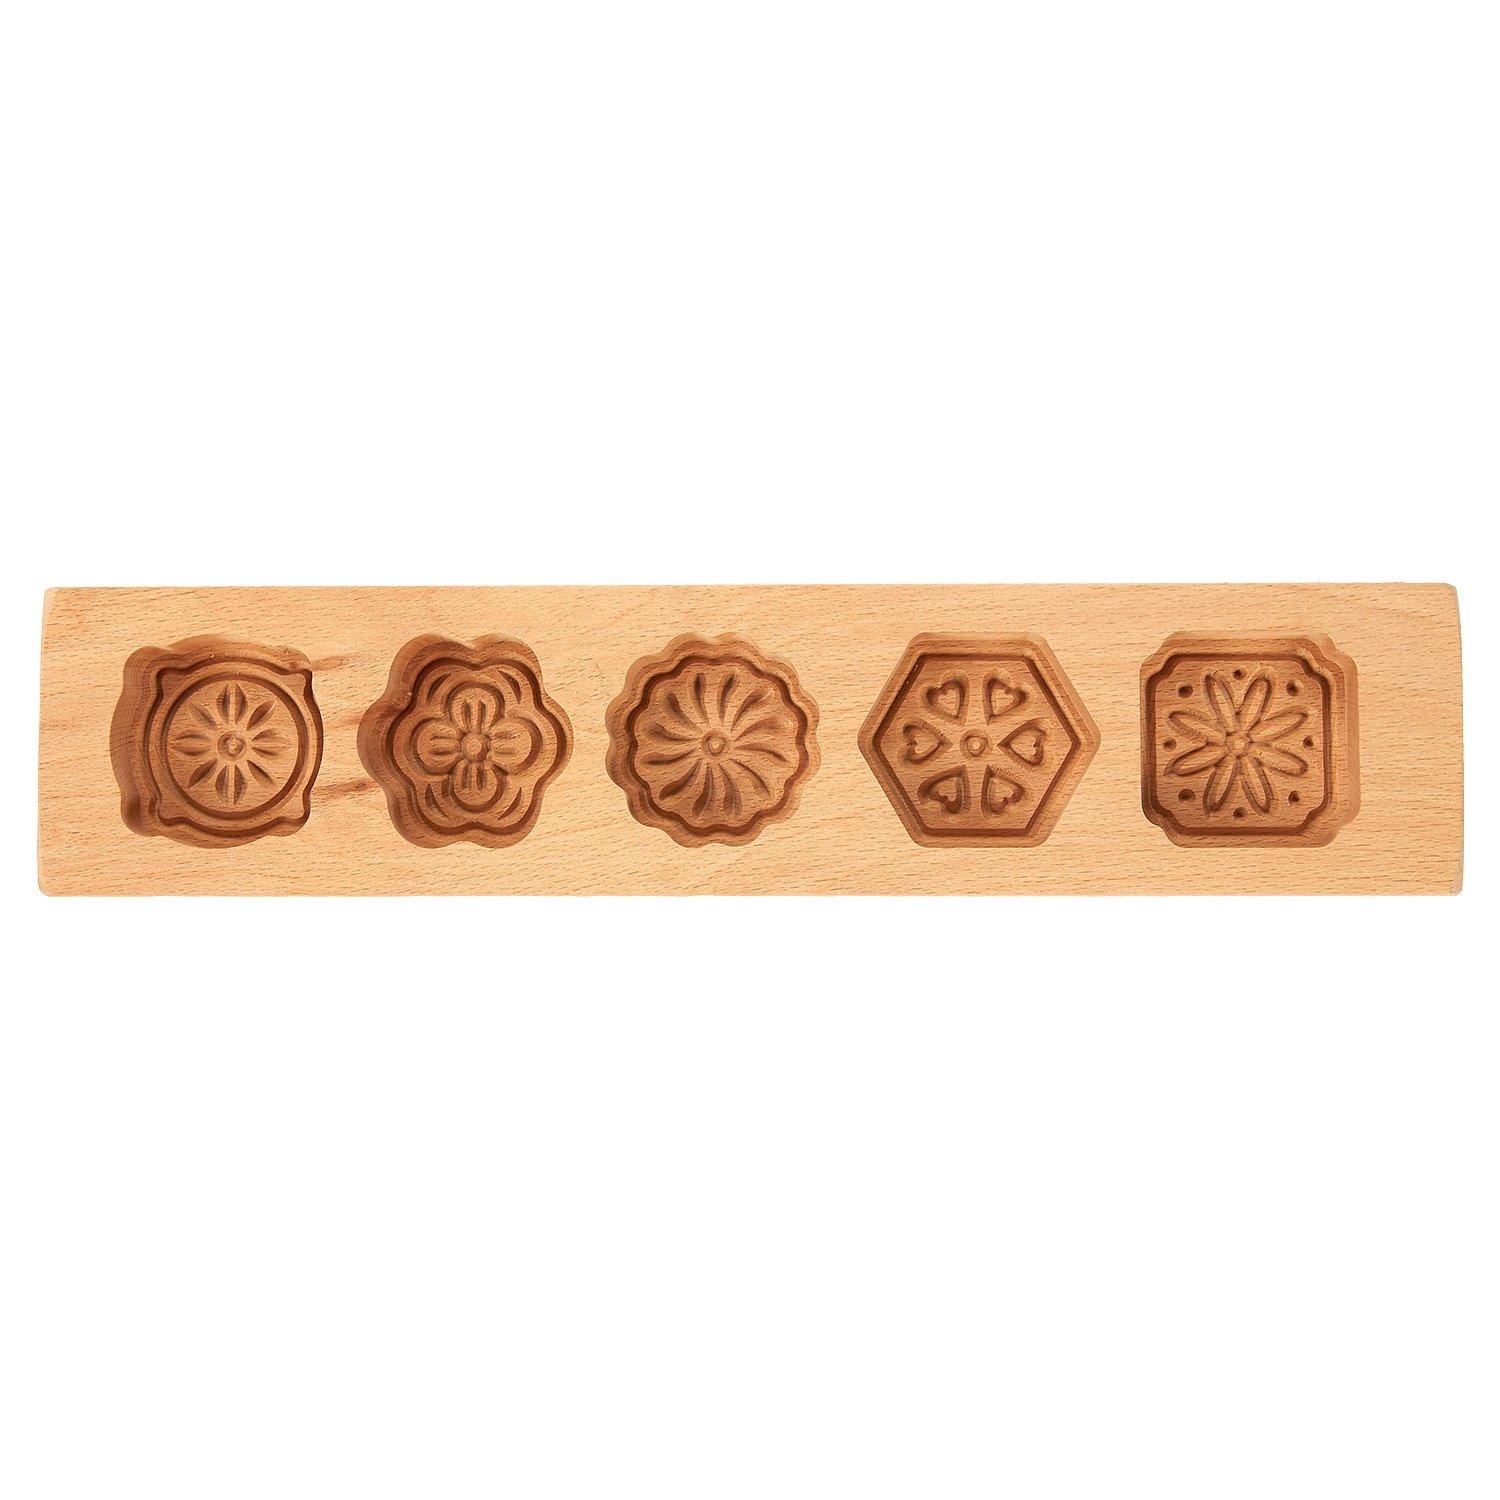 93fca651d Amazon.com: Chinese Mooncake Mold - Wooden Cake Molds for Mooncakes,  Springerle, Cookies, Soap Making, 5 Cavities: Kitchen & Dining